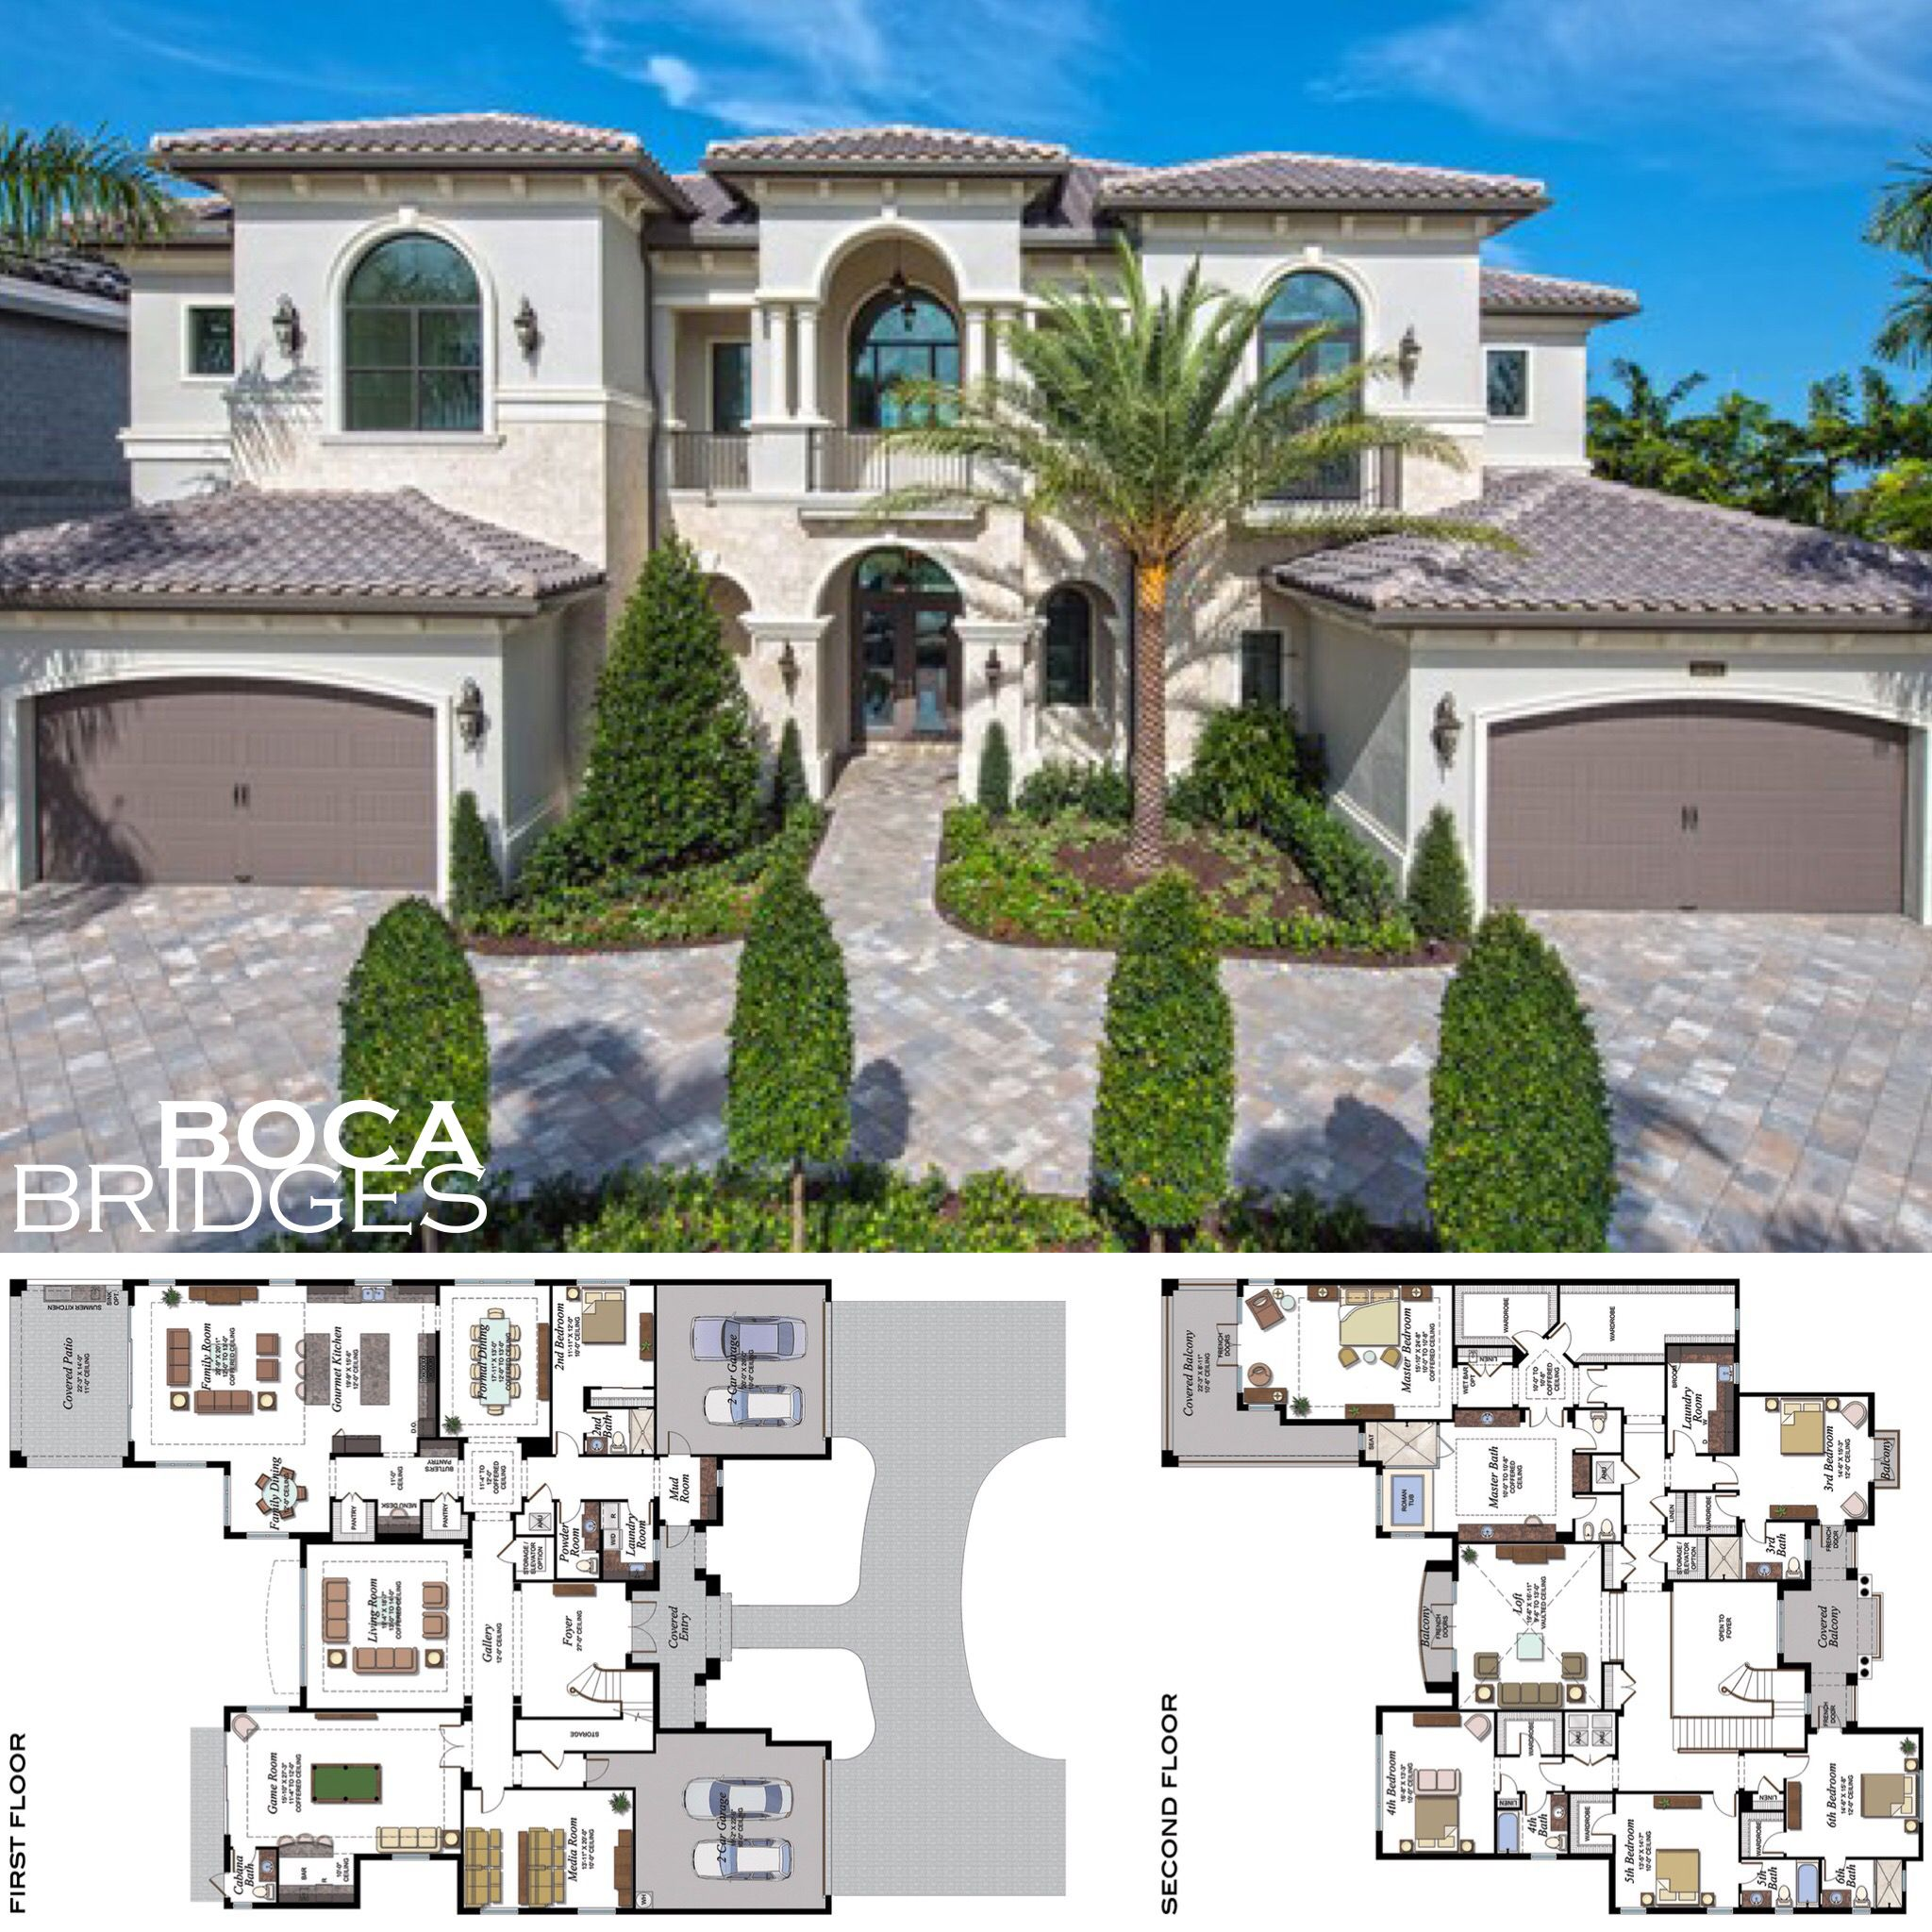 Home Sweet Home Palazzo Modelhome At Bocabridges Check Out Glhomes Website For More Info House Plans Mansion Luxury House Plans Beautiful House Plans